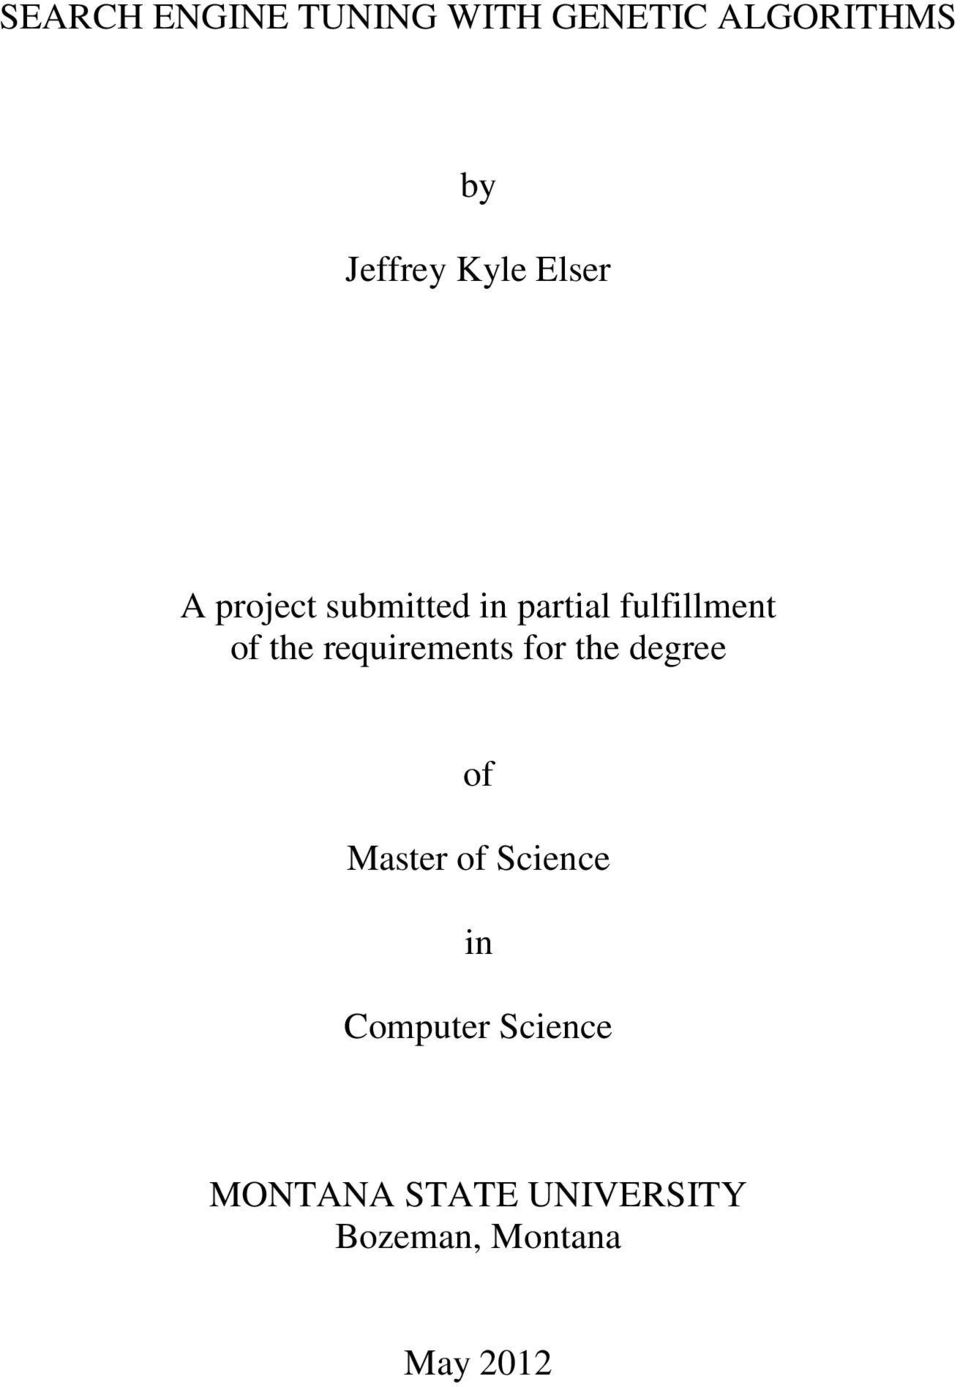 project submitted in partial fulfillment essay A final project submitted in partial fulfillment principle that it is possible to love more than one person at a time without deception or betrayal.